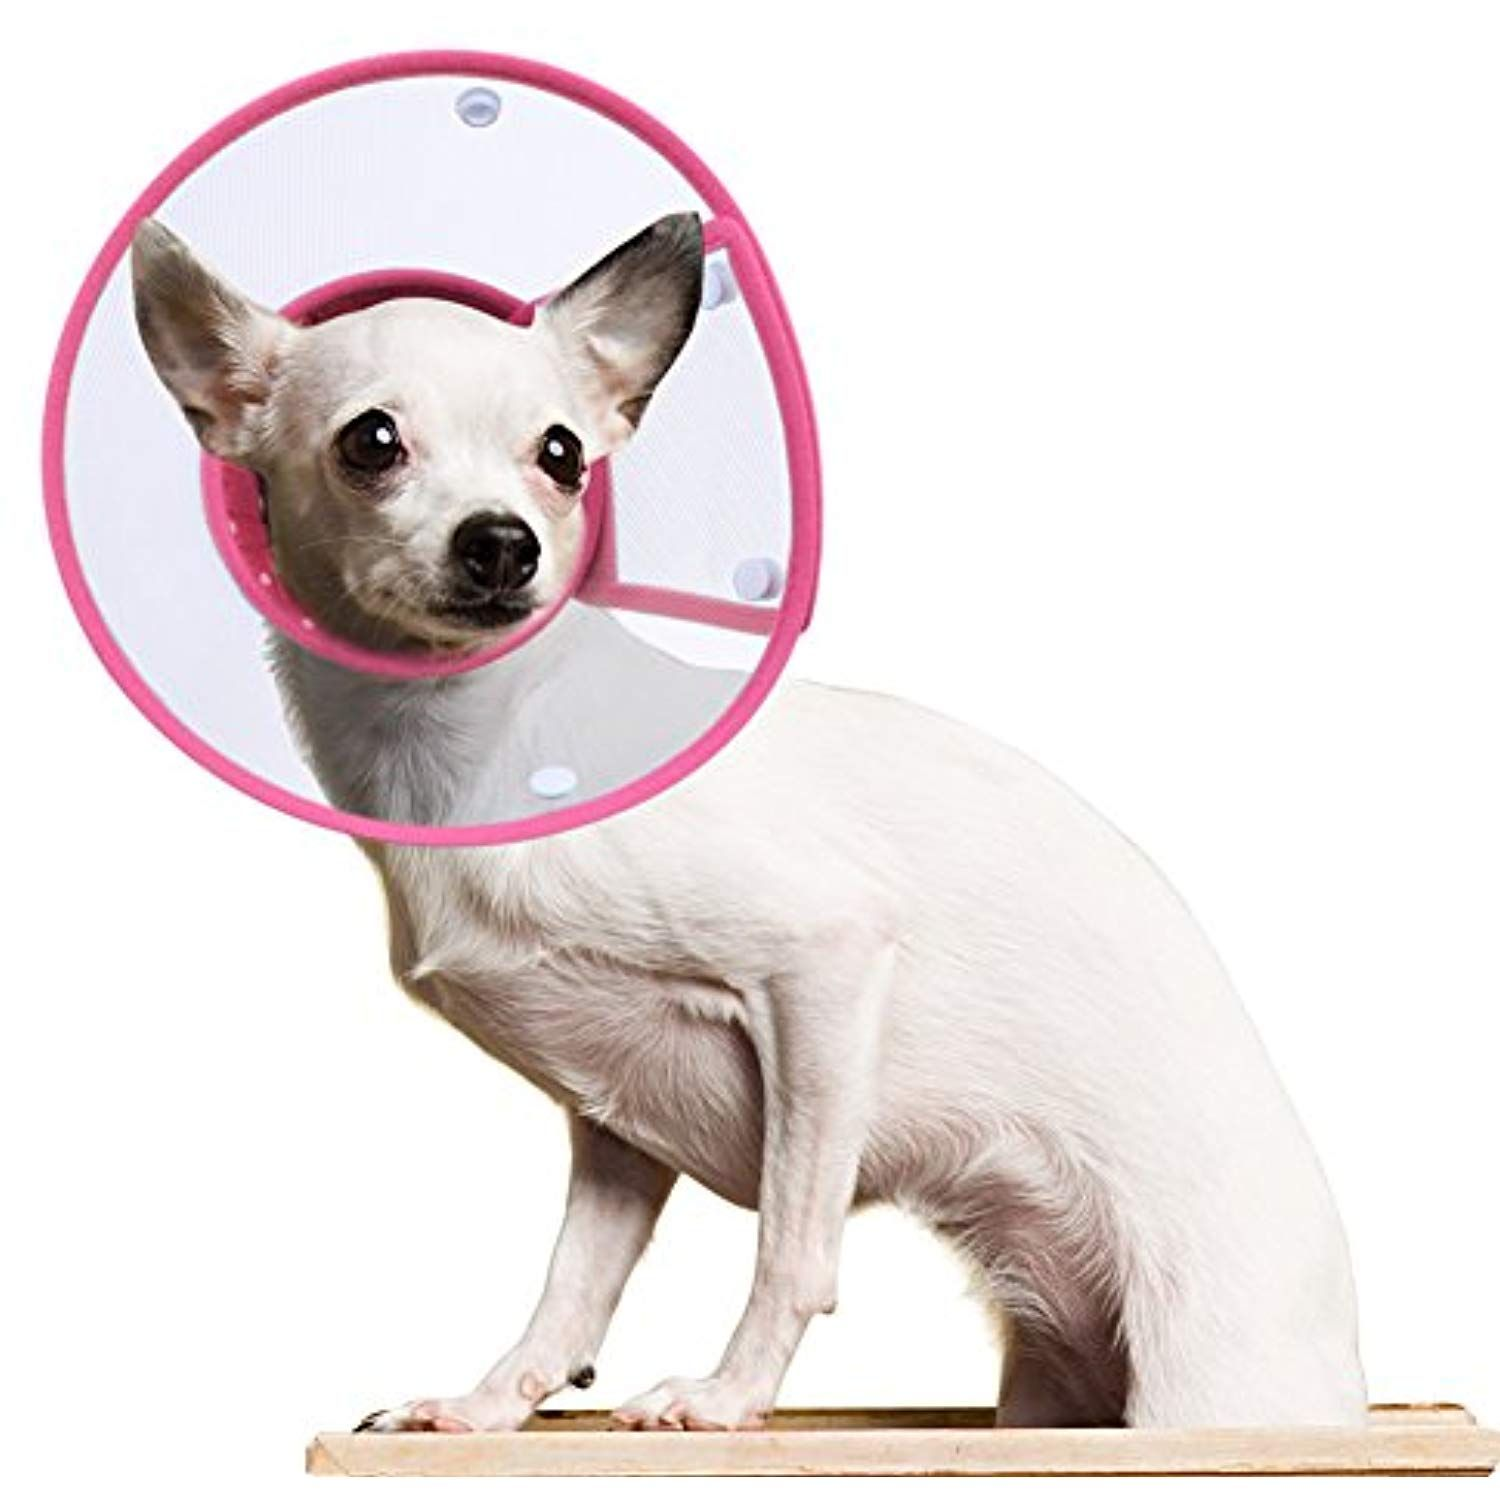 Petbaba Recovery Collar Cone Clear Soft Padded Tiny Adjustable Comfortable Elizabethan E Collar For Surgery Remedy Groo Dog Cone Cats And Kittens Dog Shedding